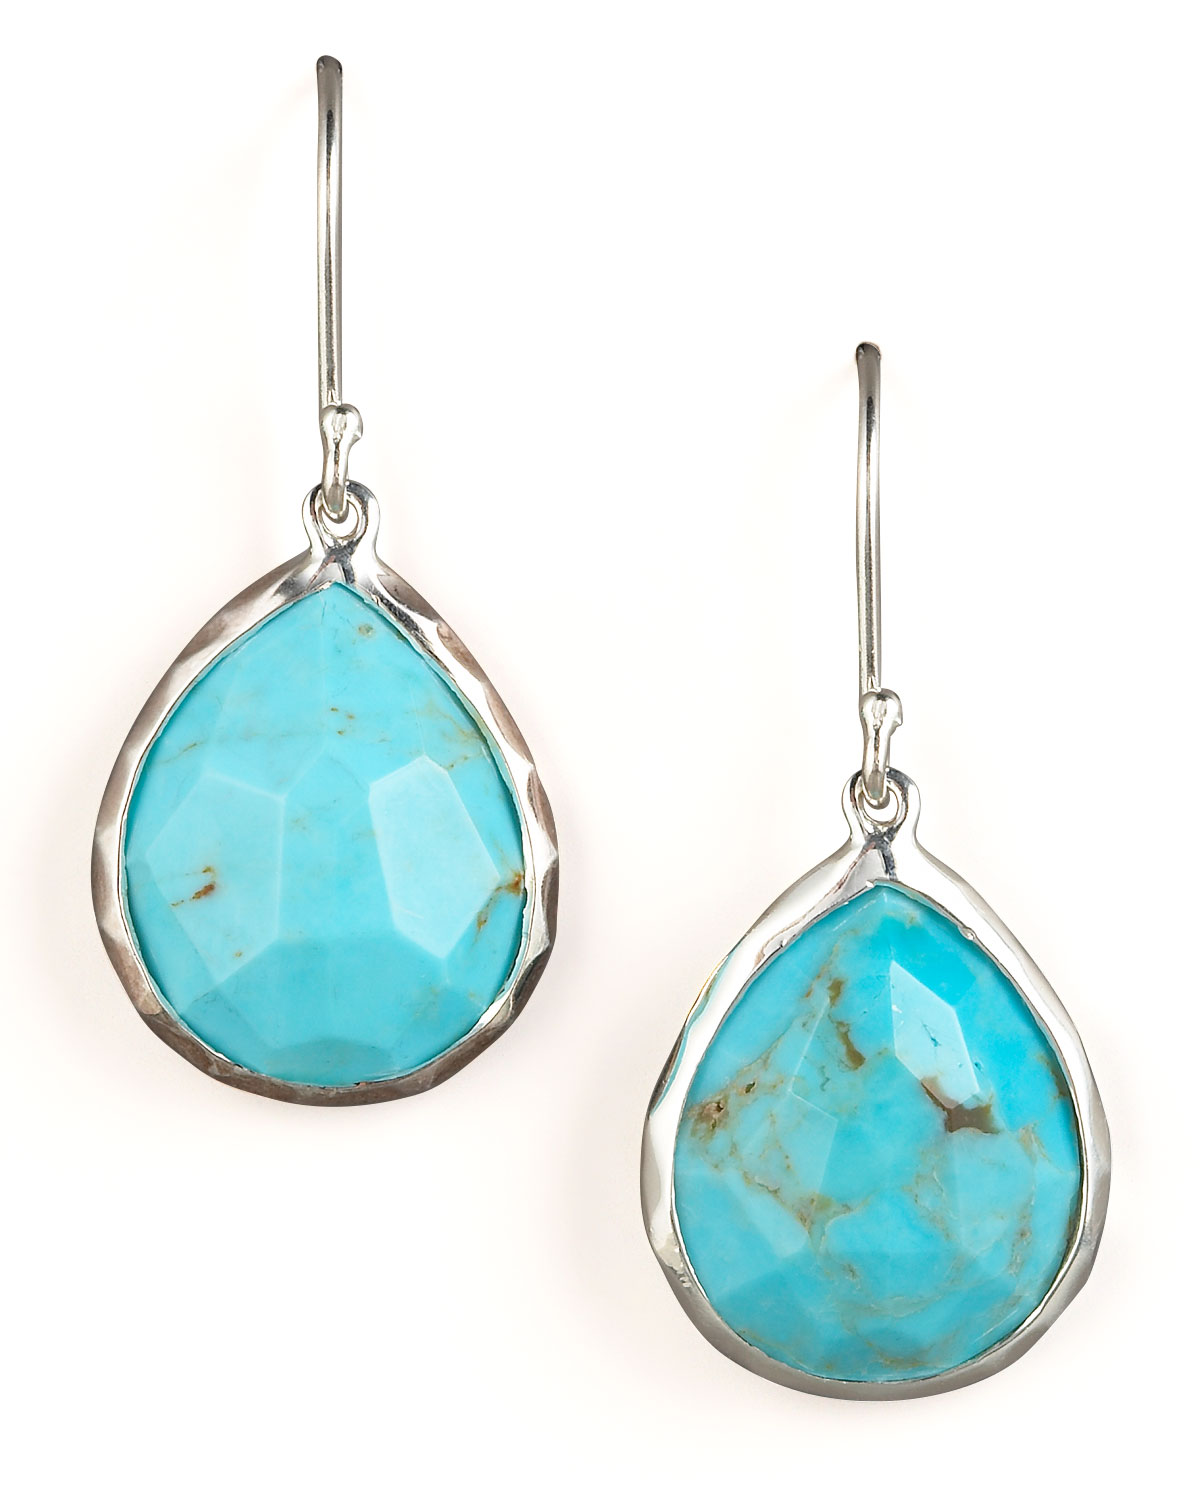 Turquoise Teardrop Earrings Small